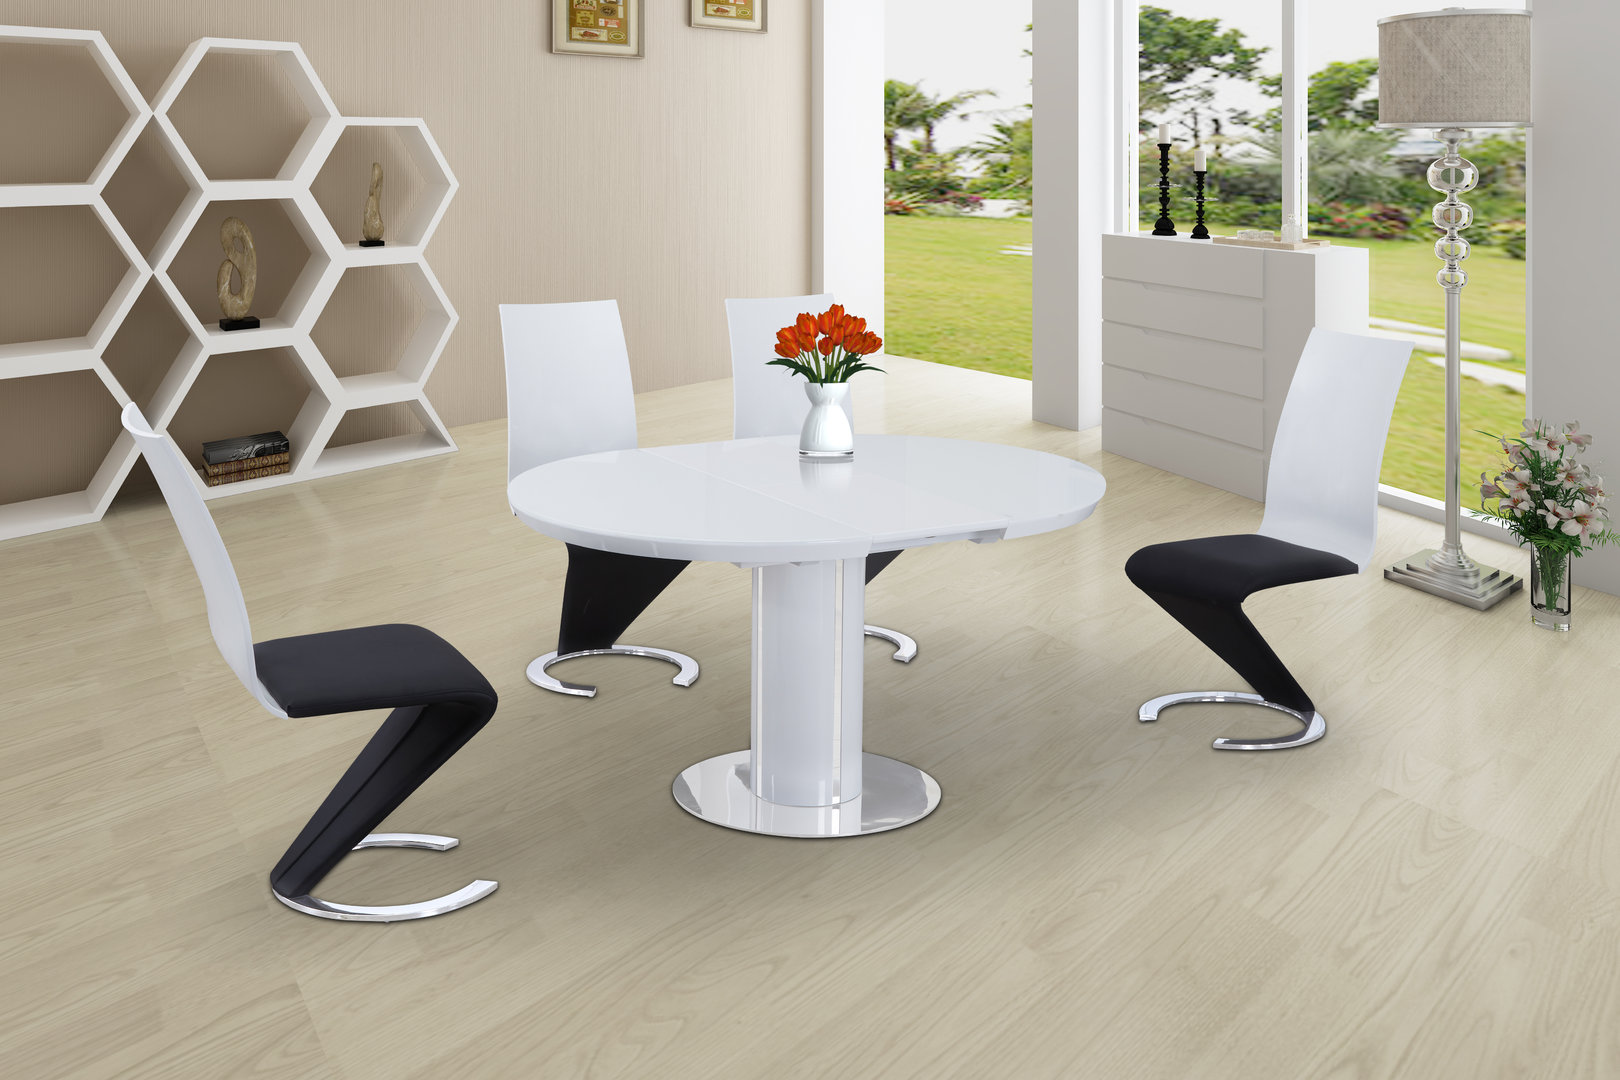 Round High Gloss Glass Dining and 6 Black with White Chairs